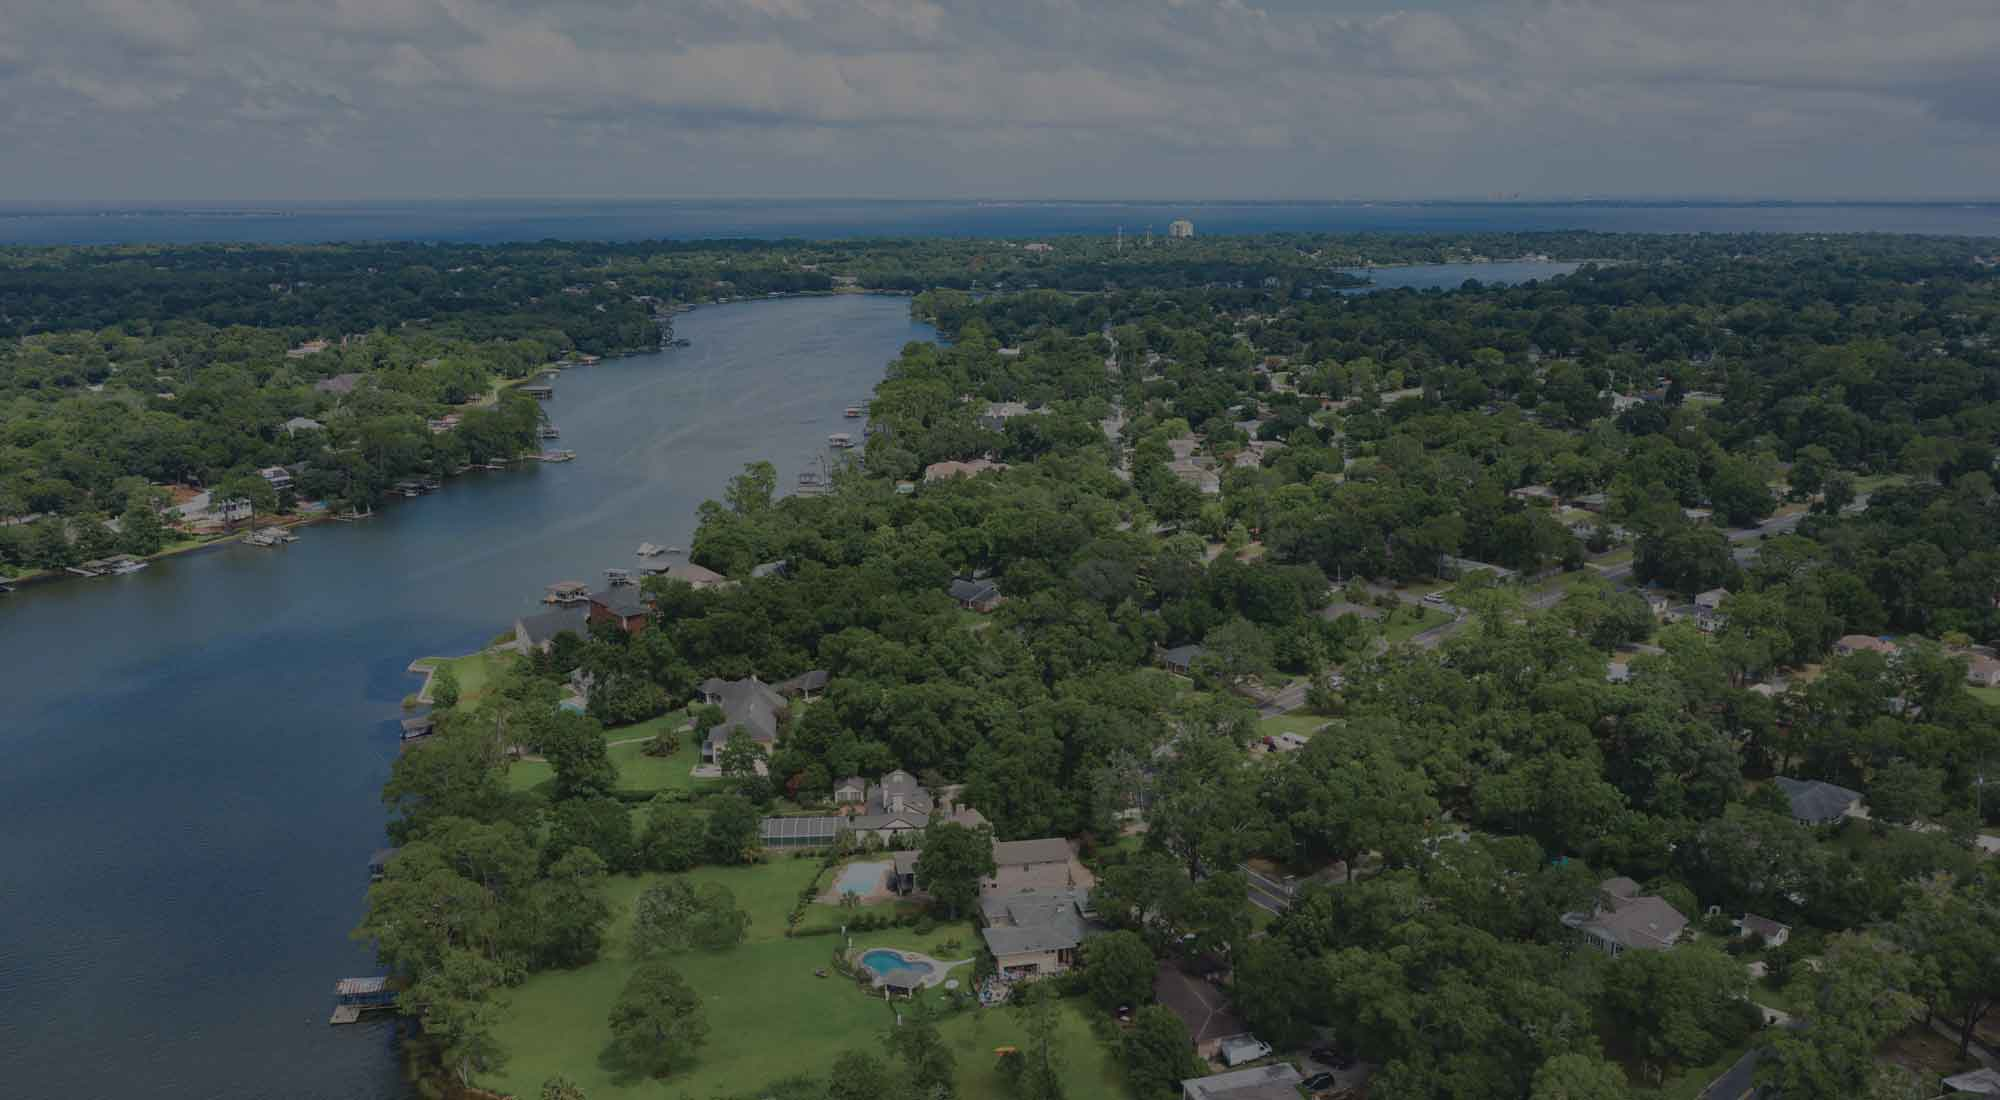 drone view of real estate along Bayou Texar in East Hill